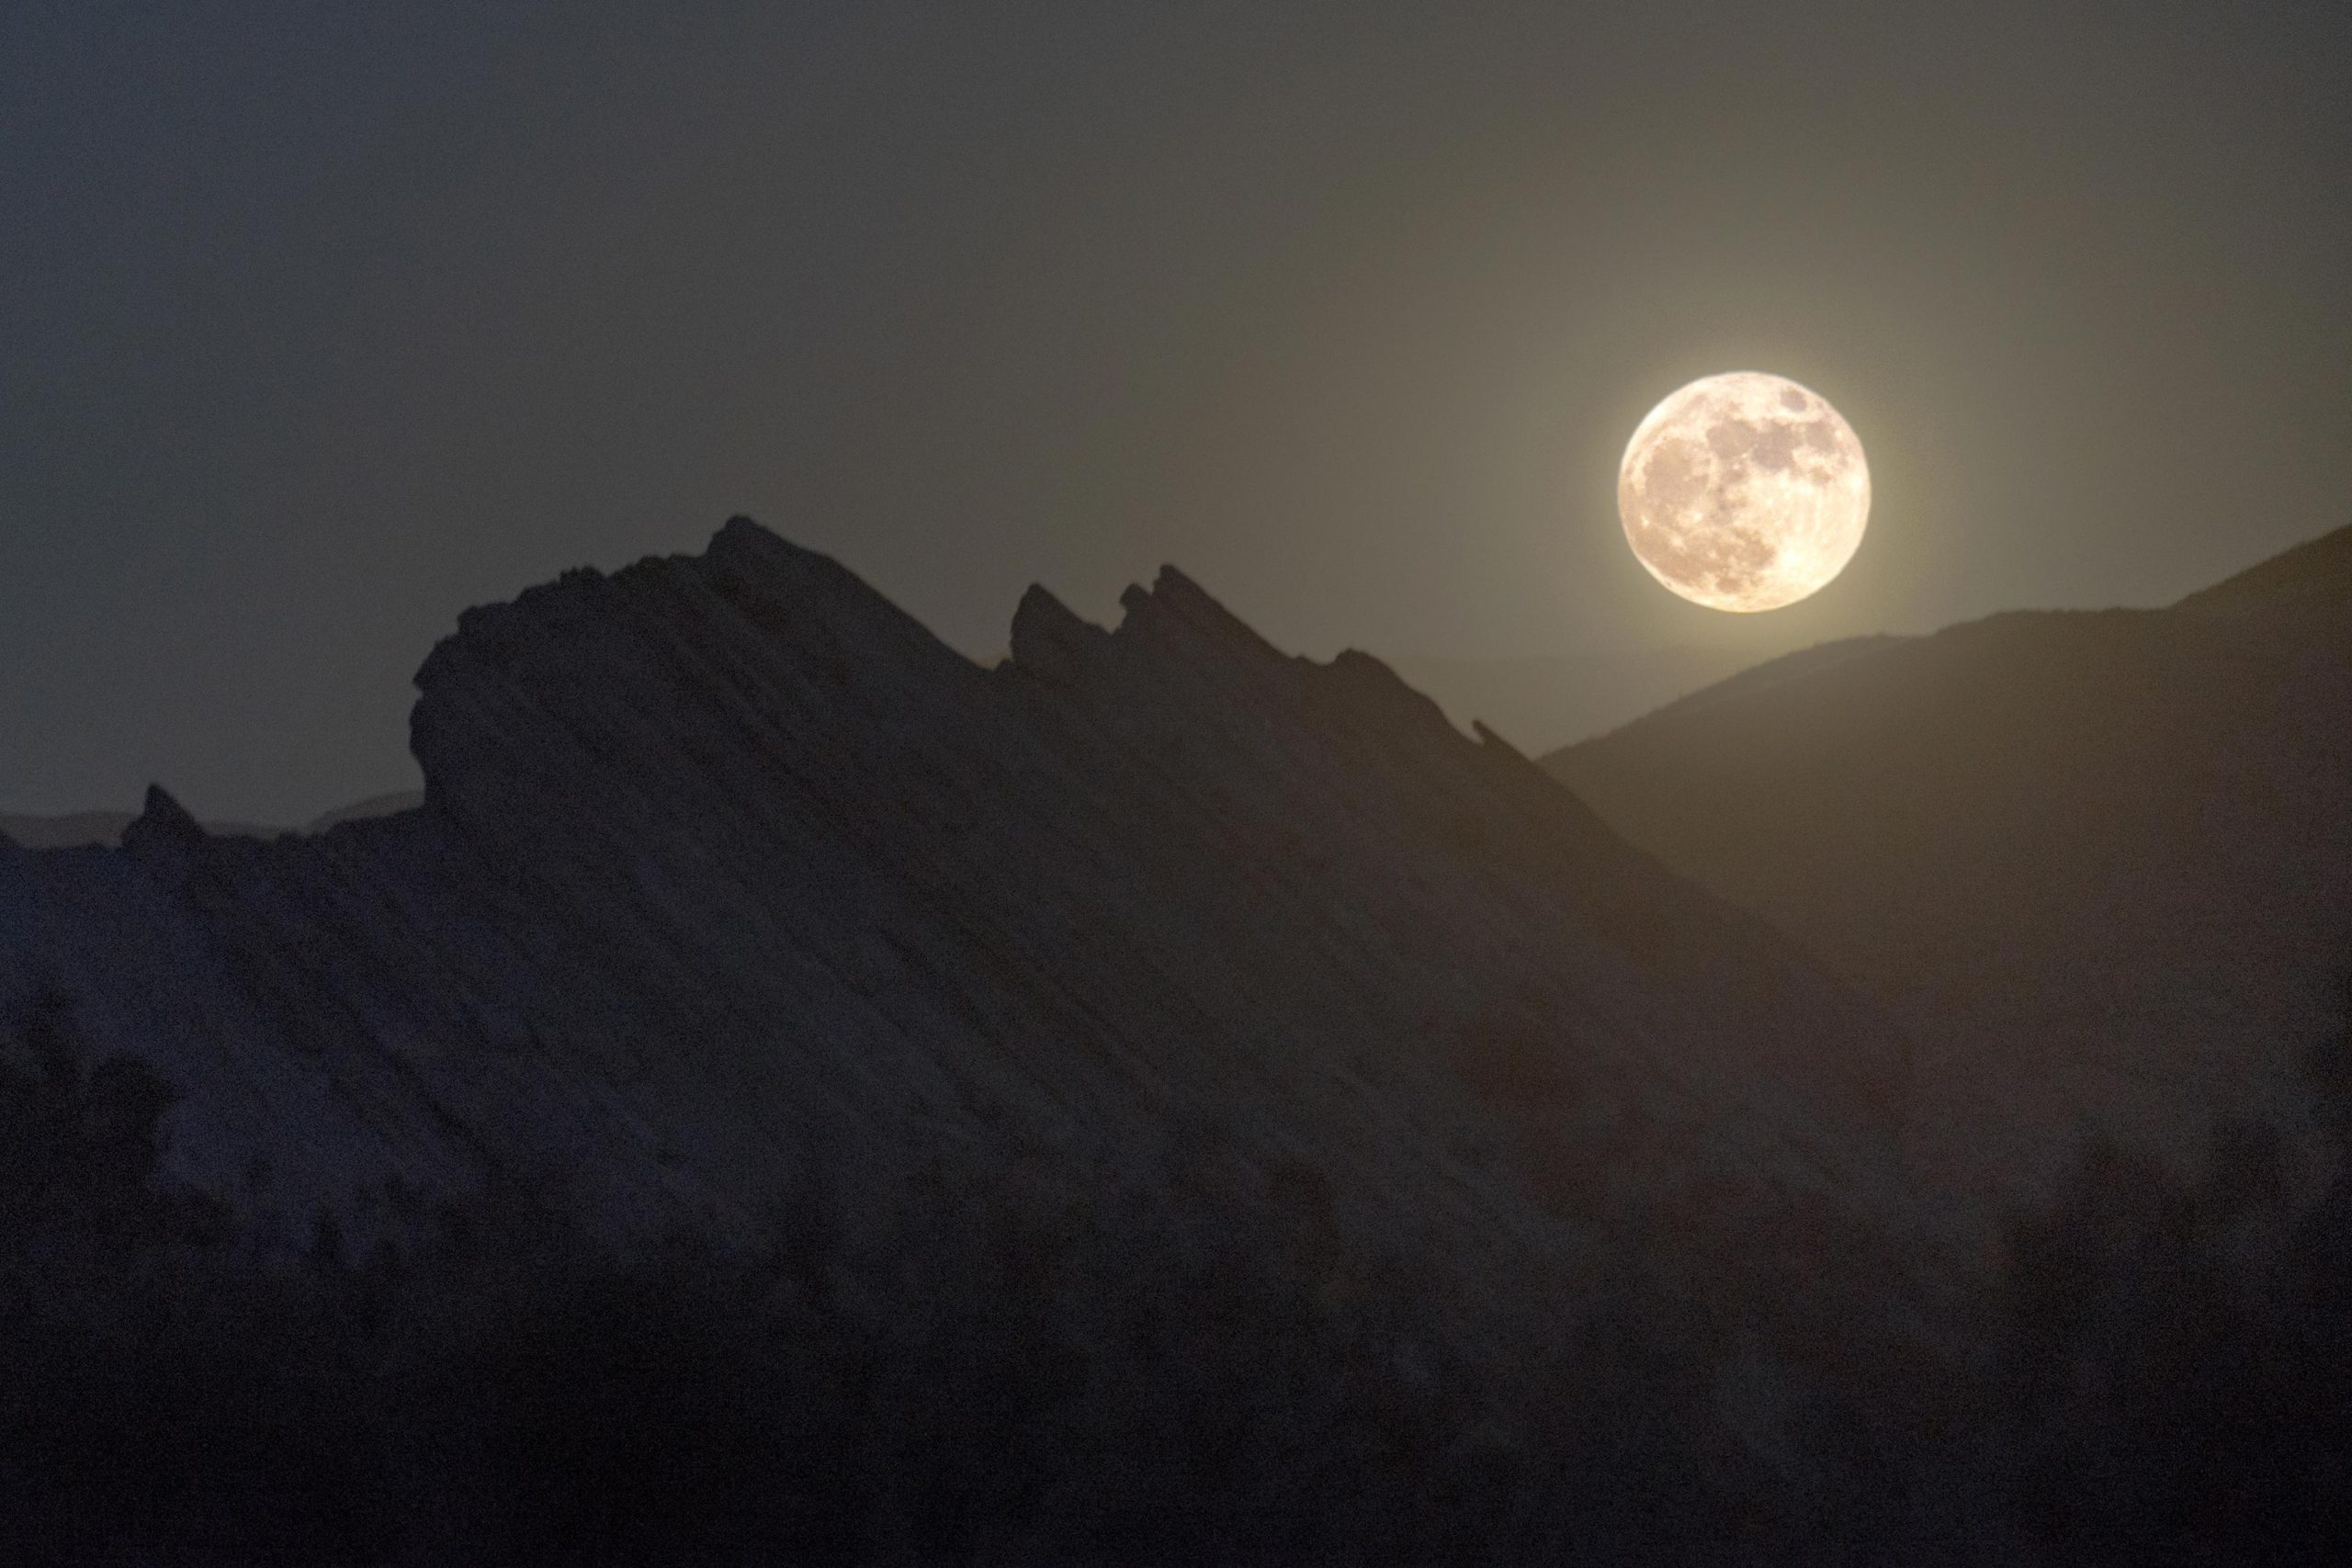 Full Moon Vasquez Rocks Natural Area Park scaled, Don't Miss: Hunter's, Blood Moon and Orionid Meteor Shower, mars cloud, ,Blood, Dont, Hunters, meteor, Moon, Orionid, science news, Shower, SPACE, spacelivenews, SpaceLiveNews